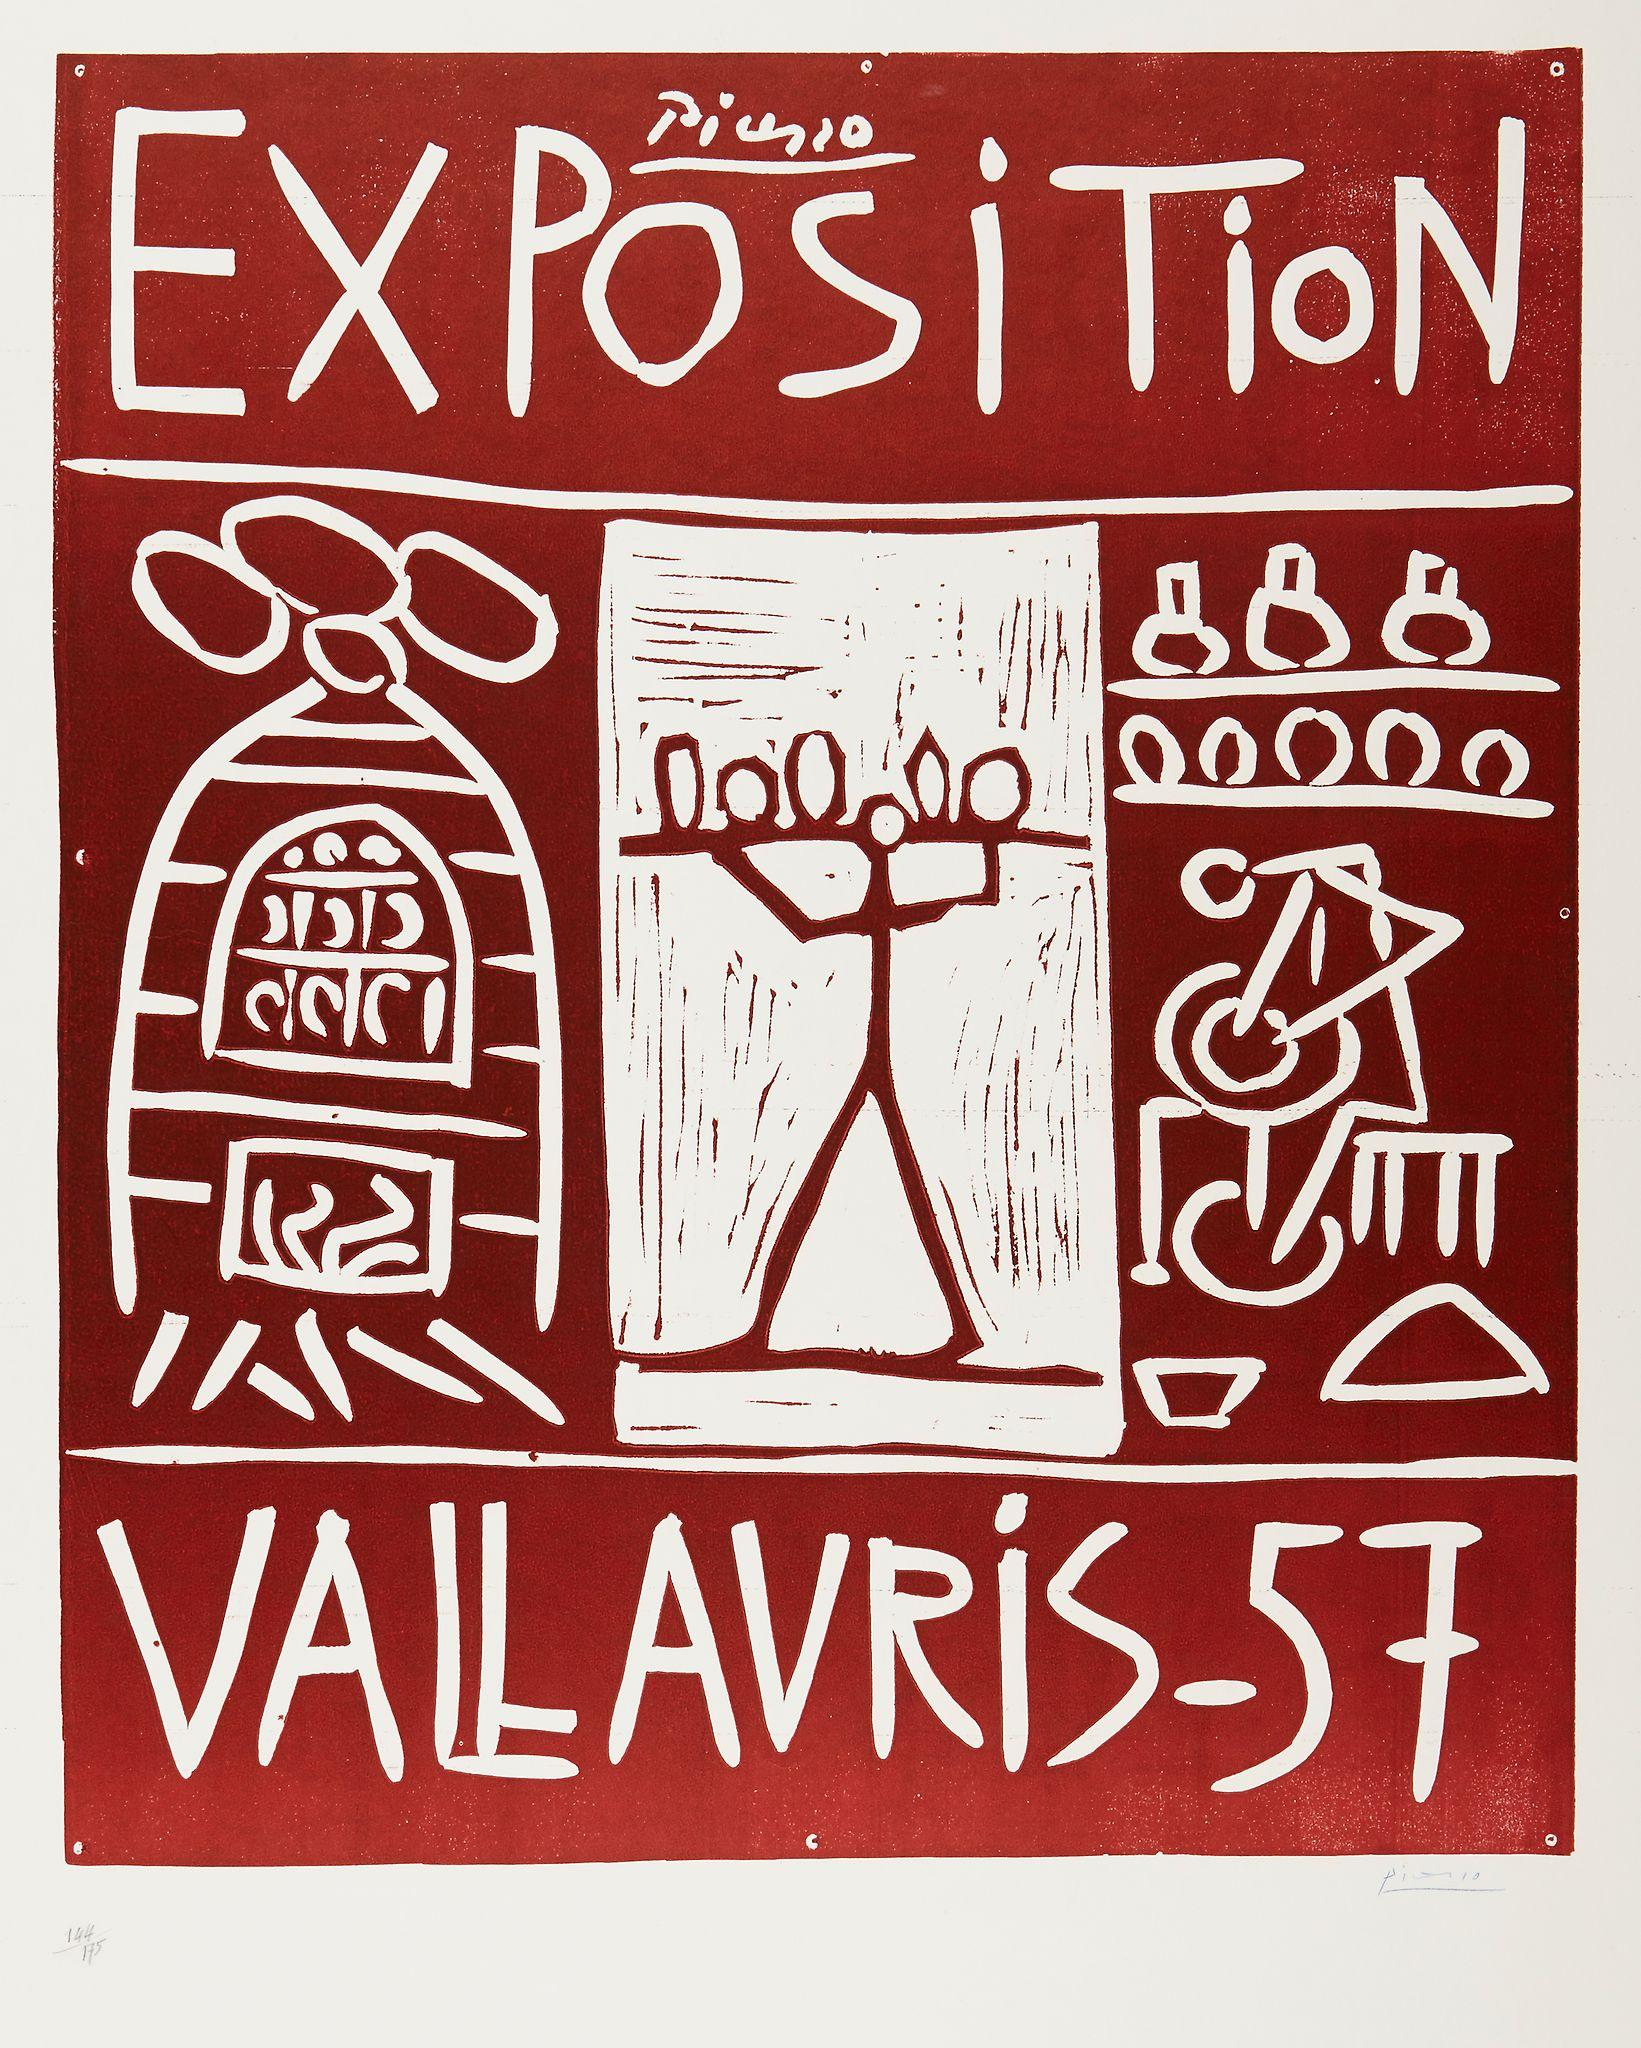 Exposition Vallauris (B 1277) by Pablo Picasso